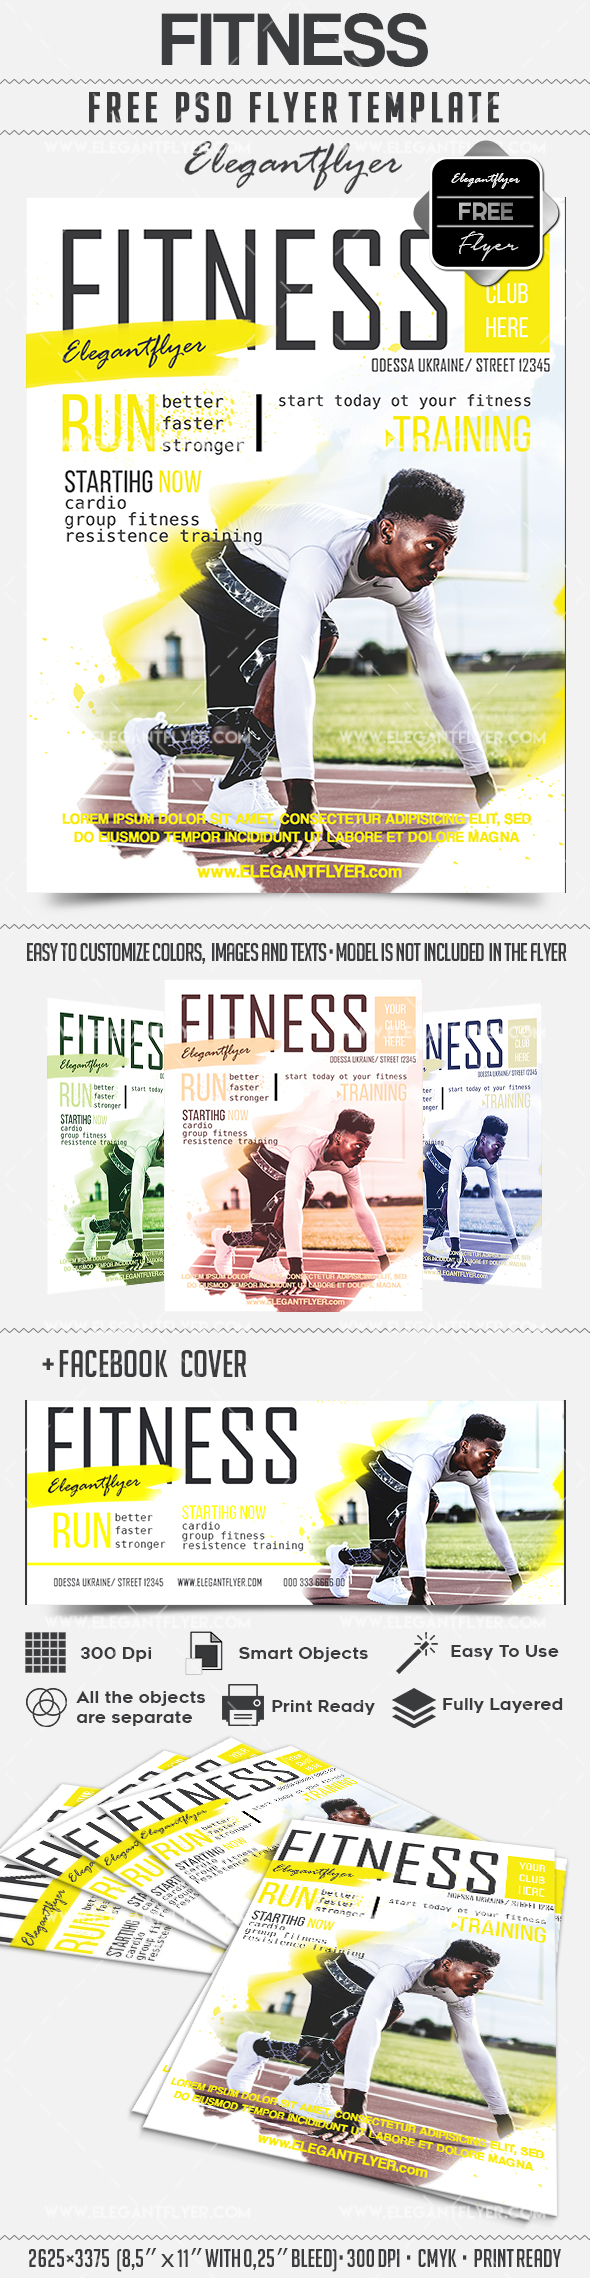 Fitness for Men Poster